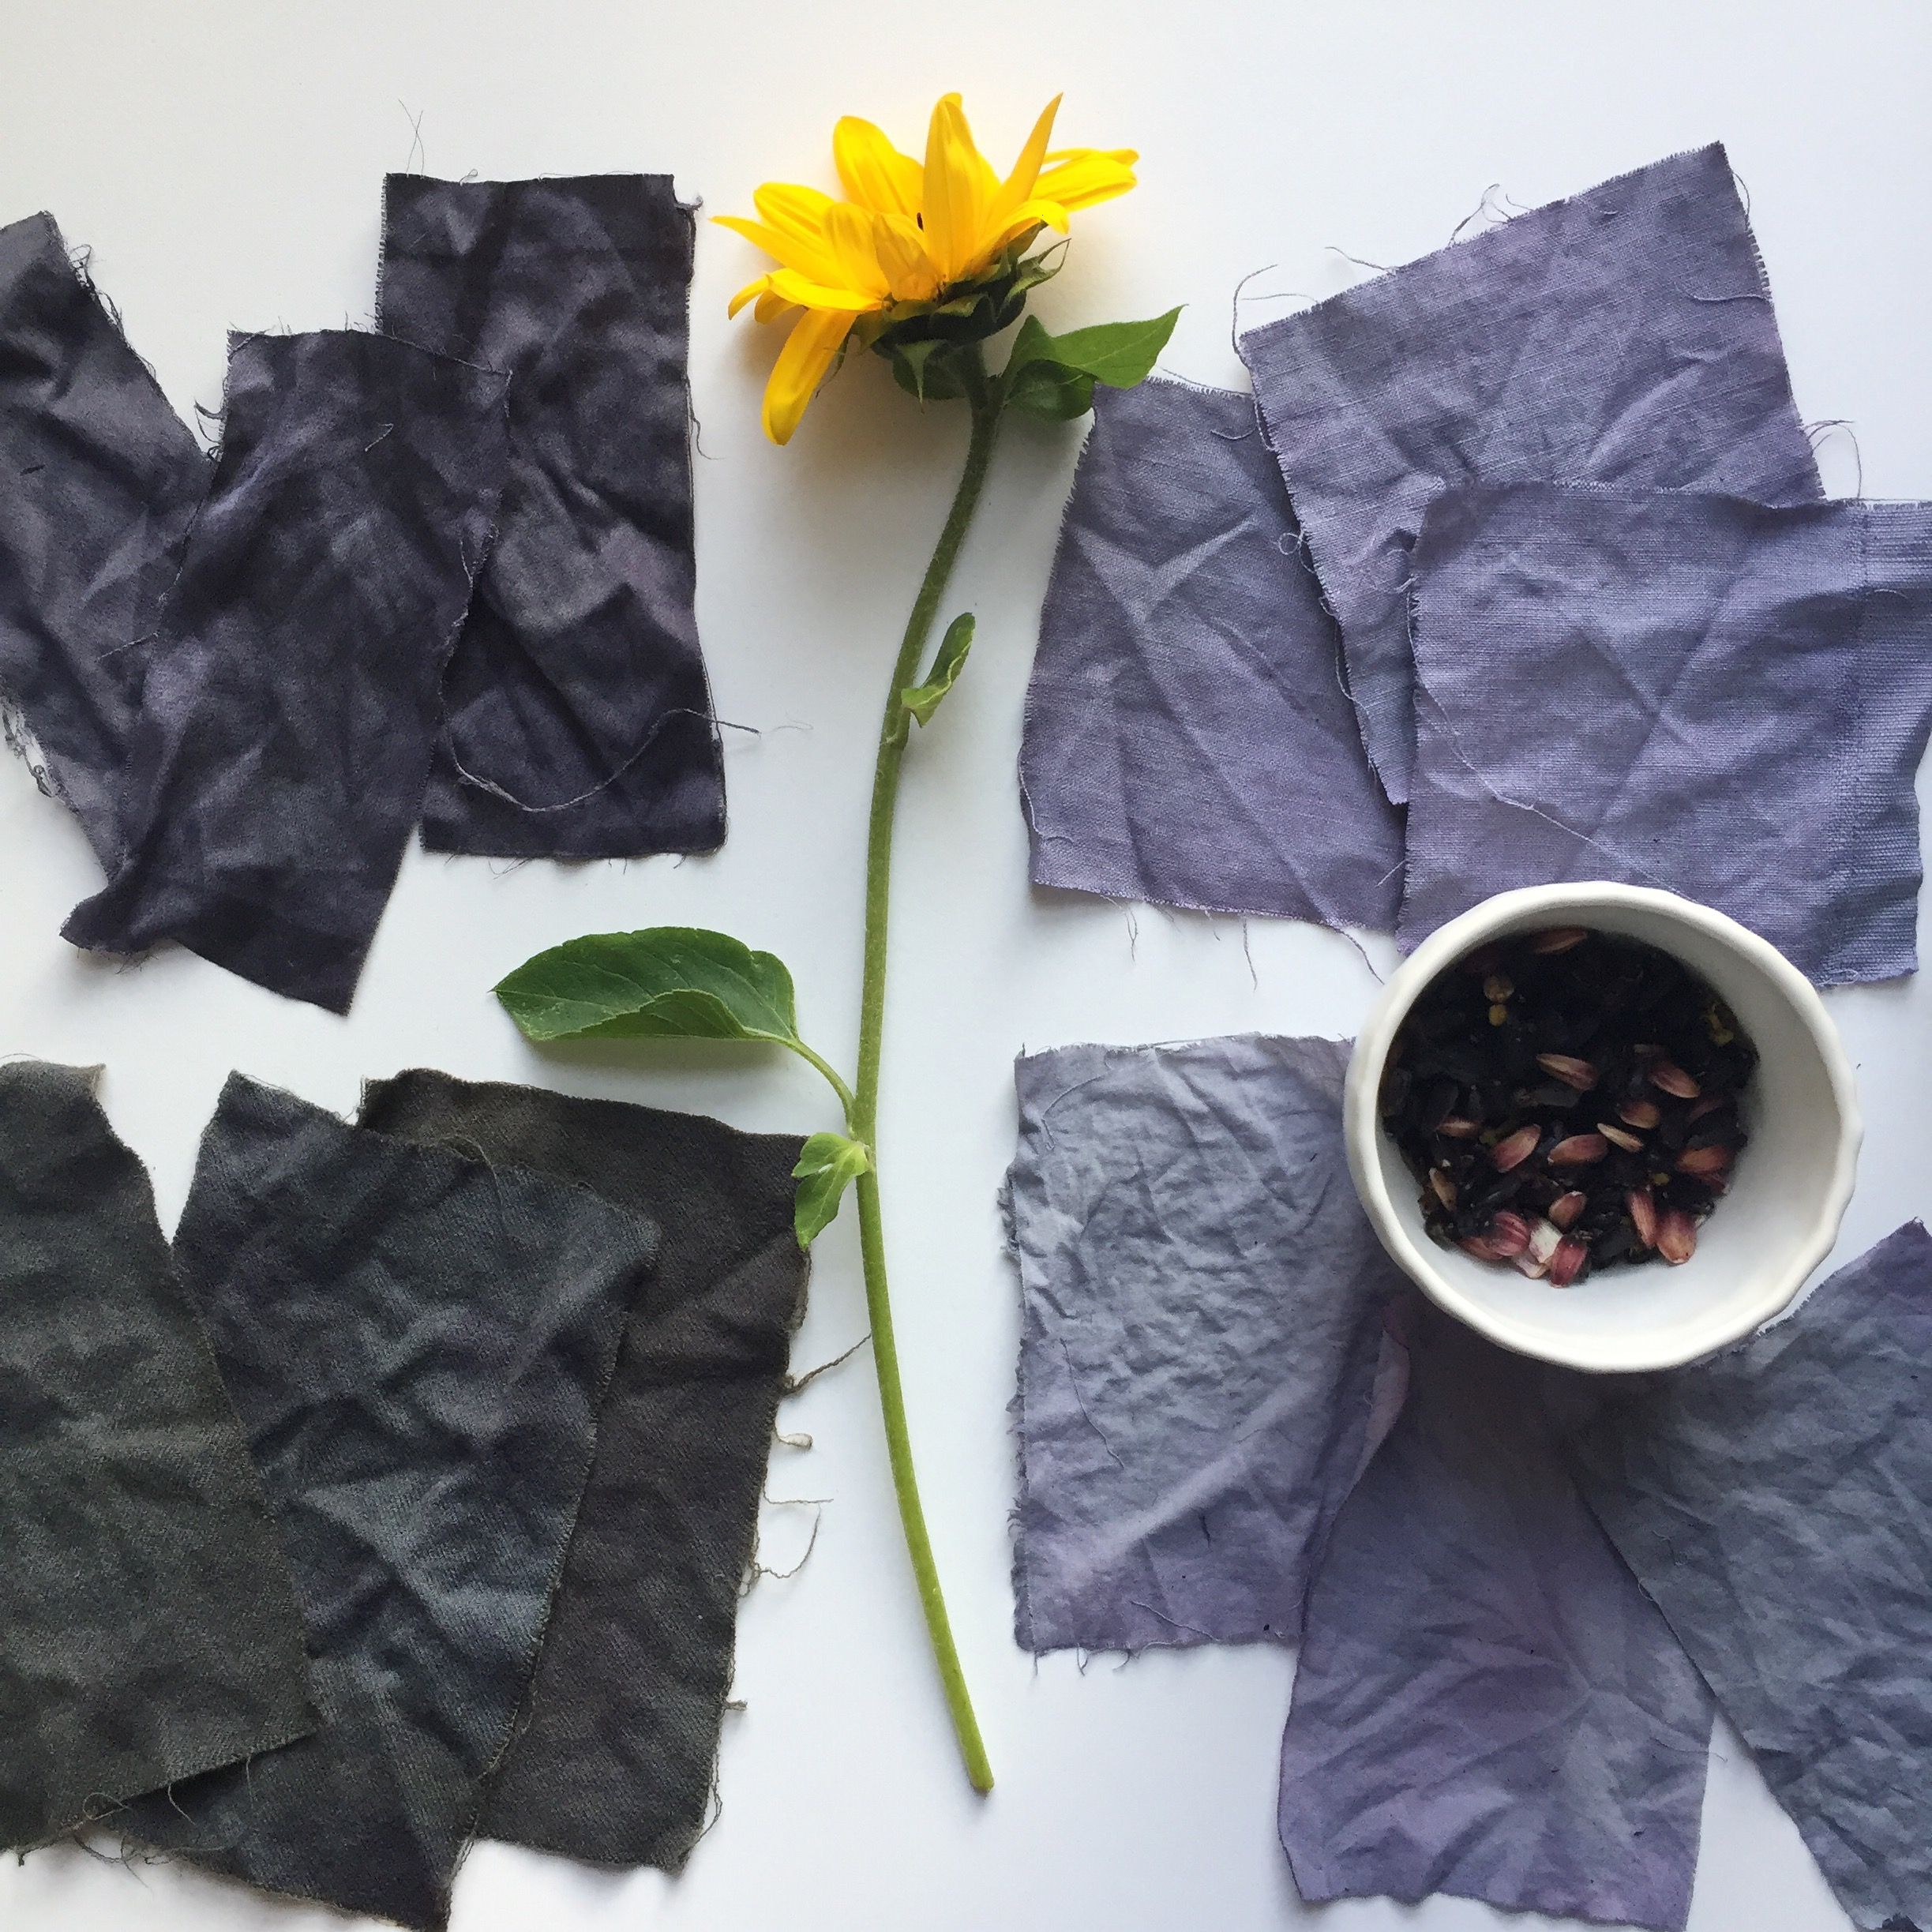 Purple And Gray Natural Dyes From Hopi Black Dye Sunflower Seeds Samples From My Recent Dye Workshop Www Ka Natural Dyes Natural Dye Fabric How To Dye Fabric